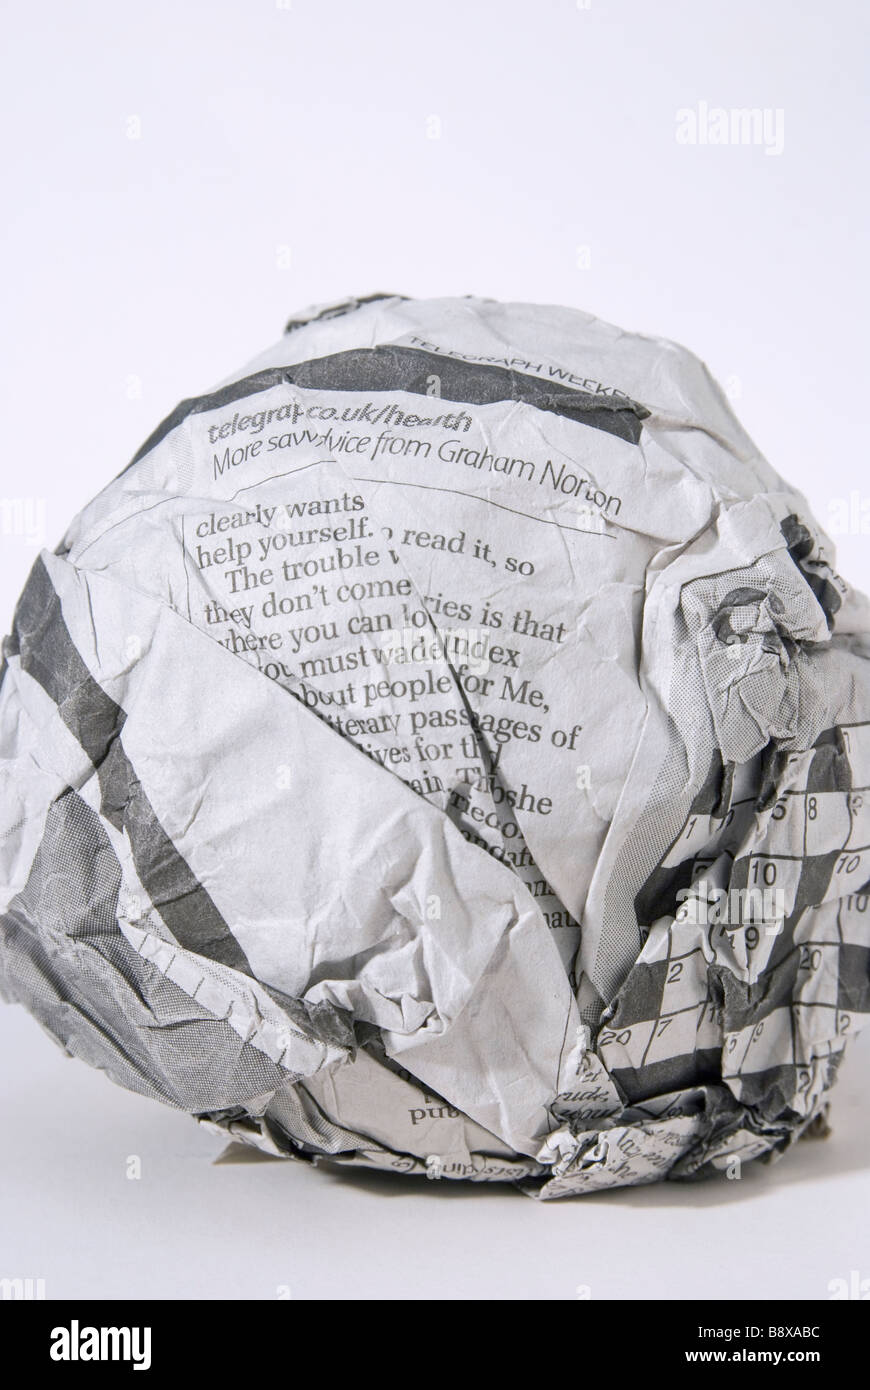 scrunched ball of newspaper - Stock Image